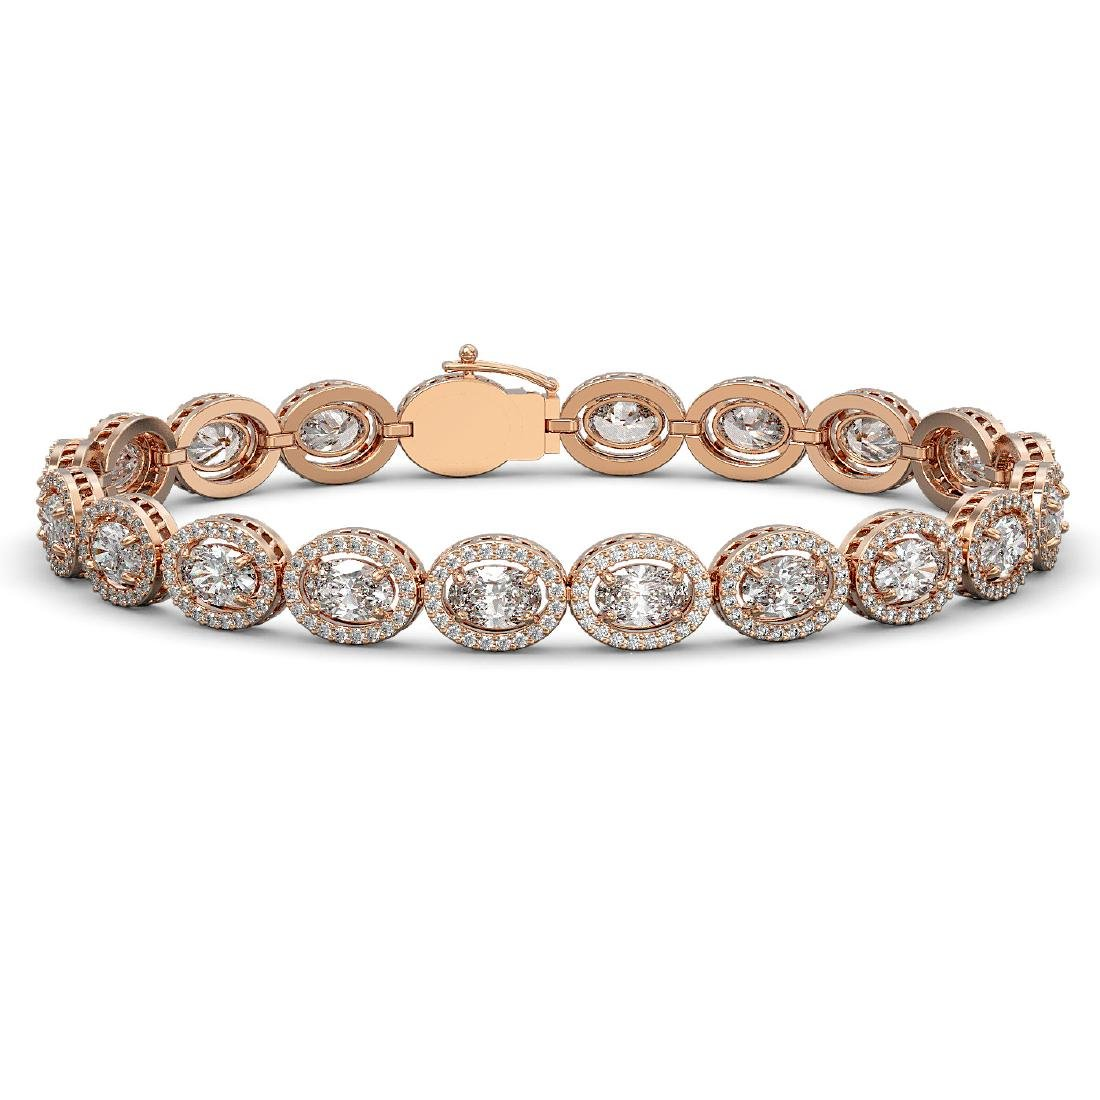 15.20 CTW Oval Diamond Designer Bracelet 18K Rose Gold